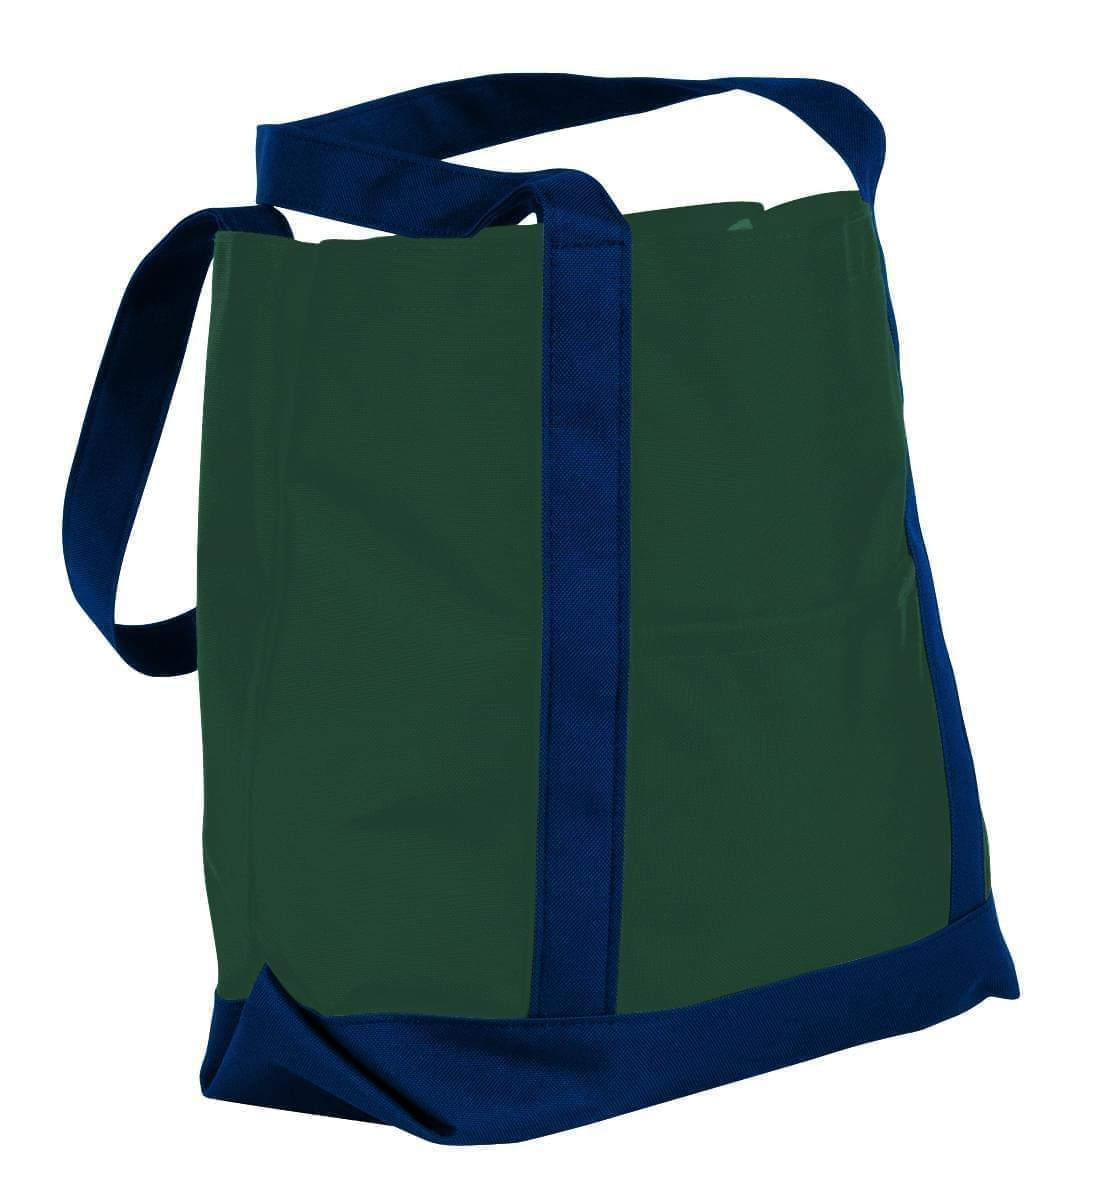 USA Made Nylon Poly Boat Tote Bags, Hunter Green-Navy, XAACL1UASI